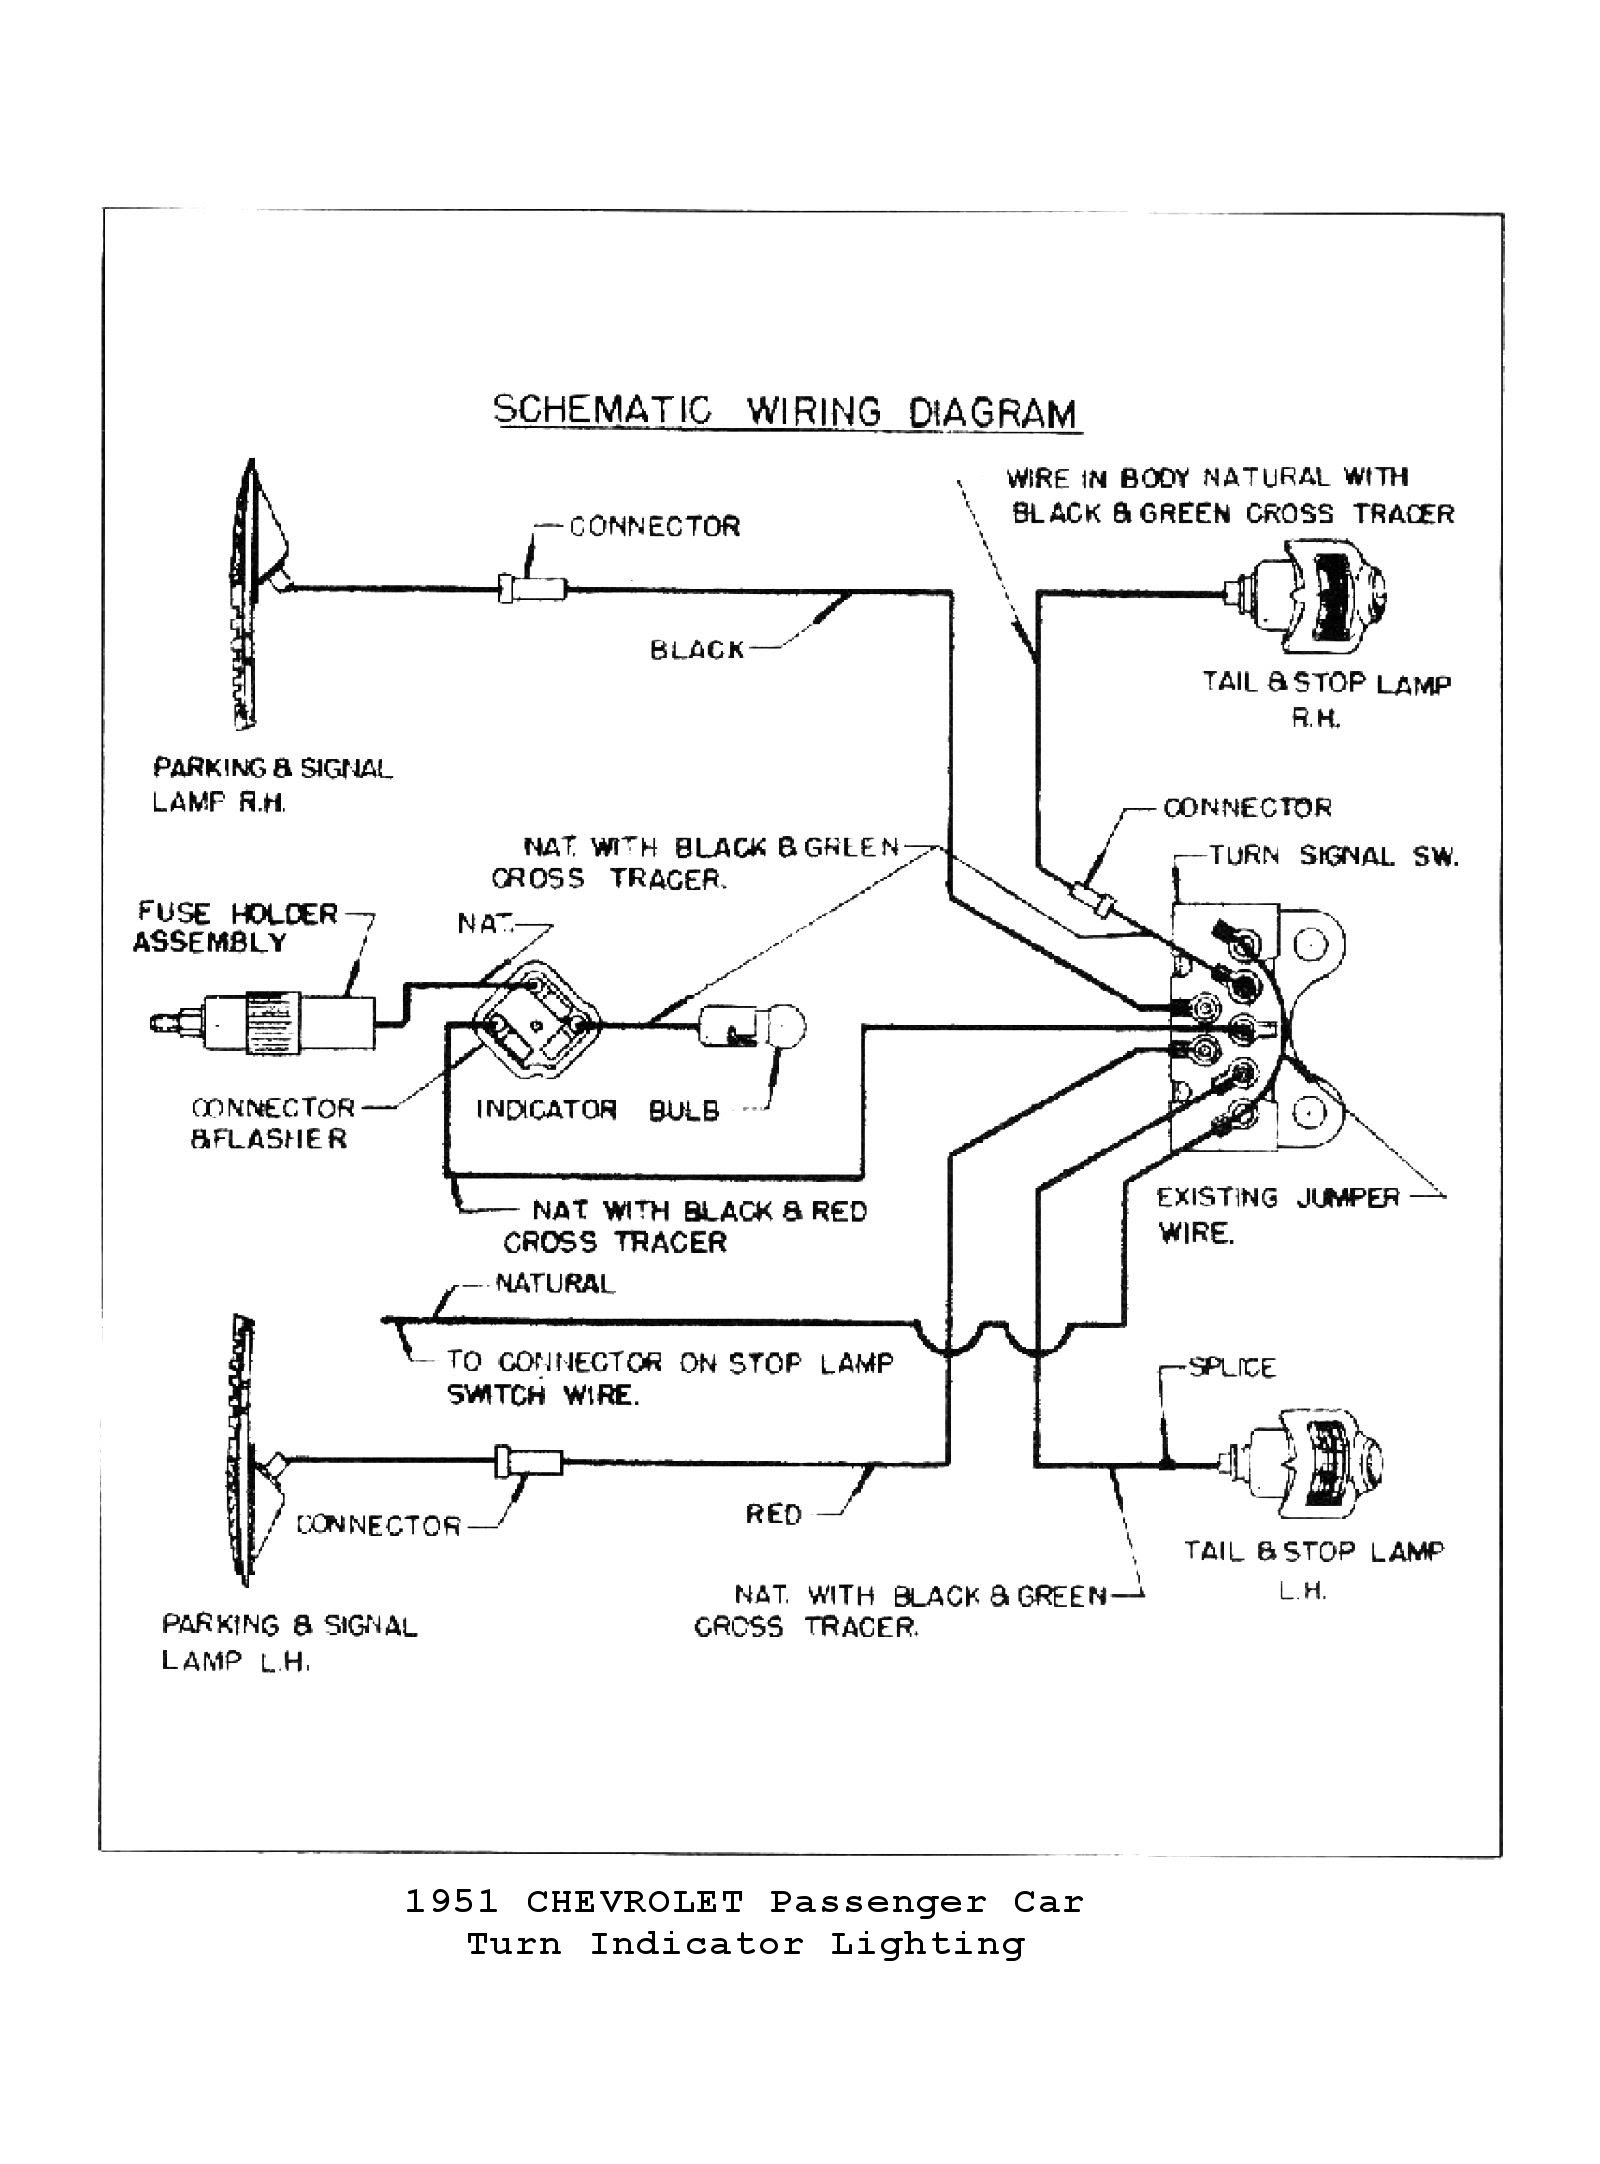 55 Chevy Tail Light Wiring Wiring Diagram Corsa Corsa Pasticceriagele It